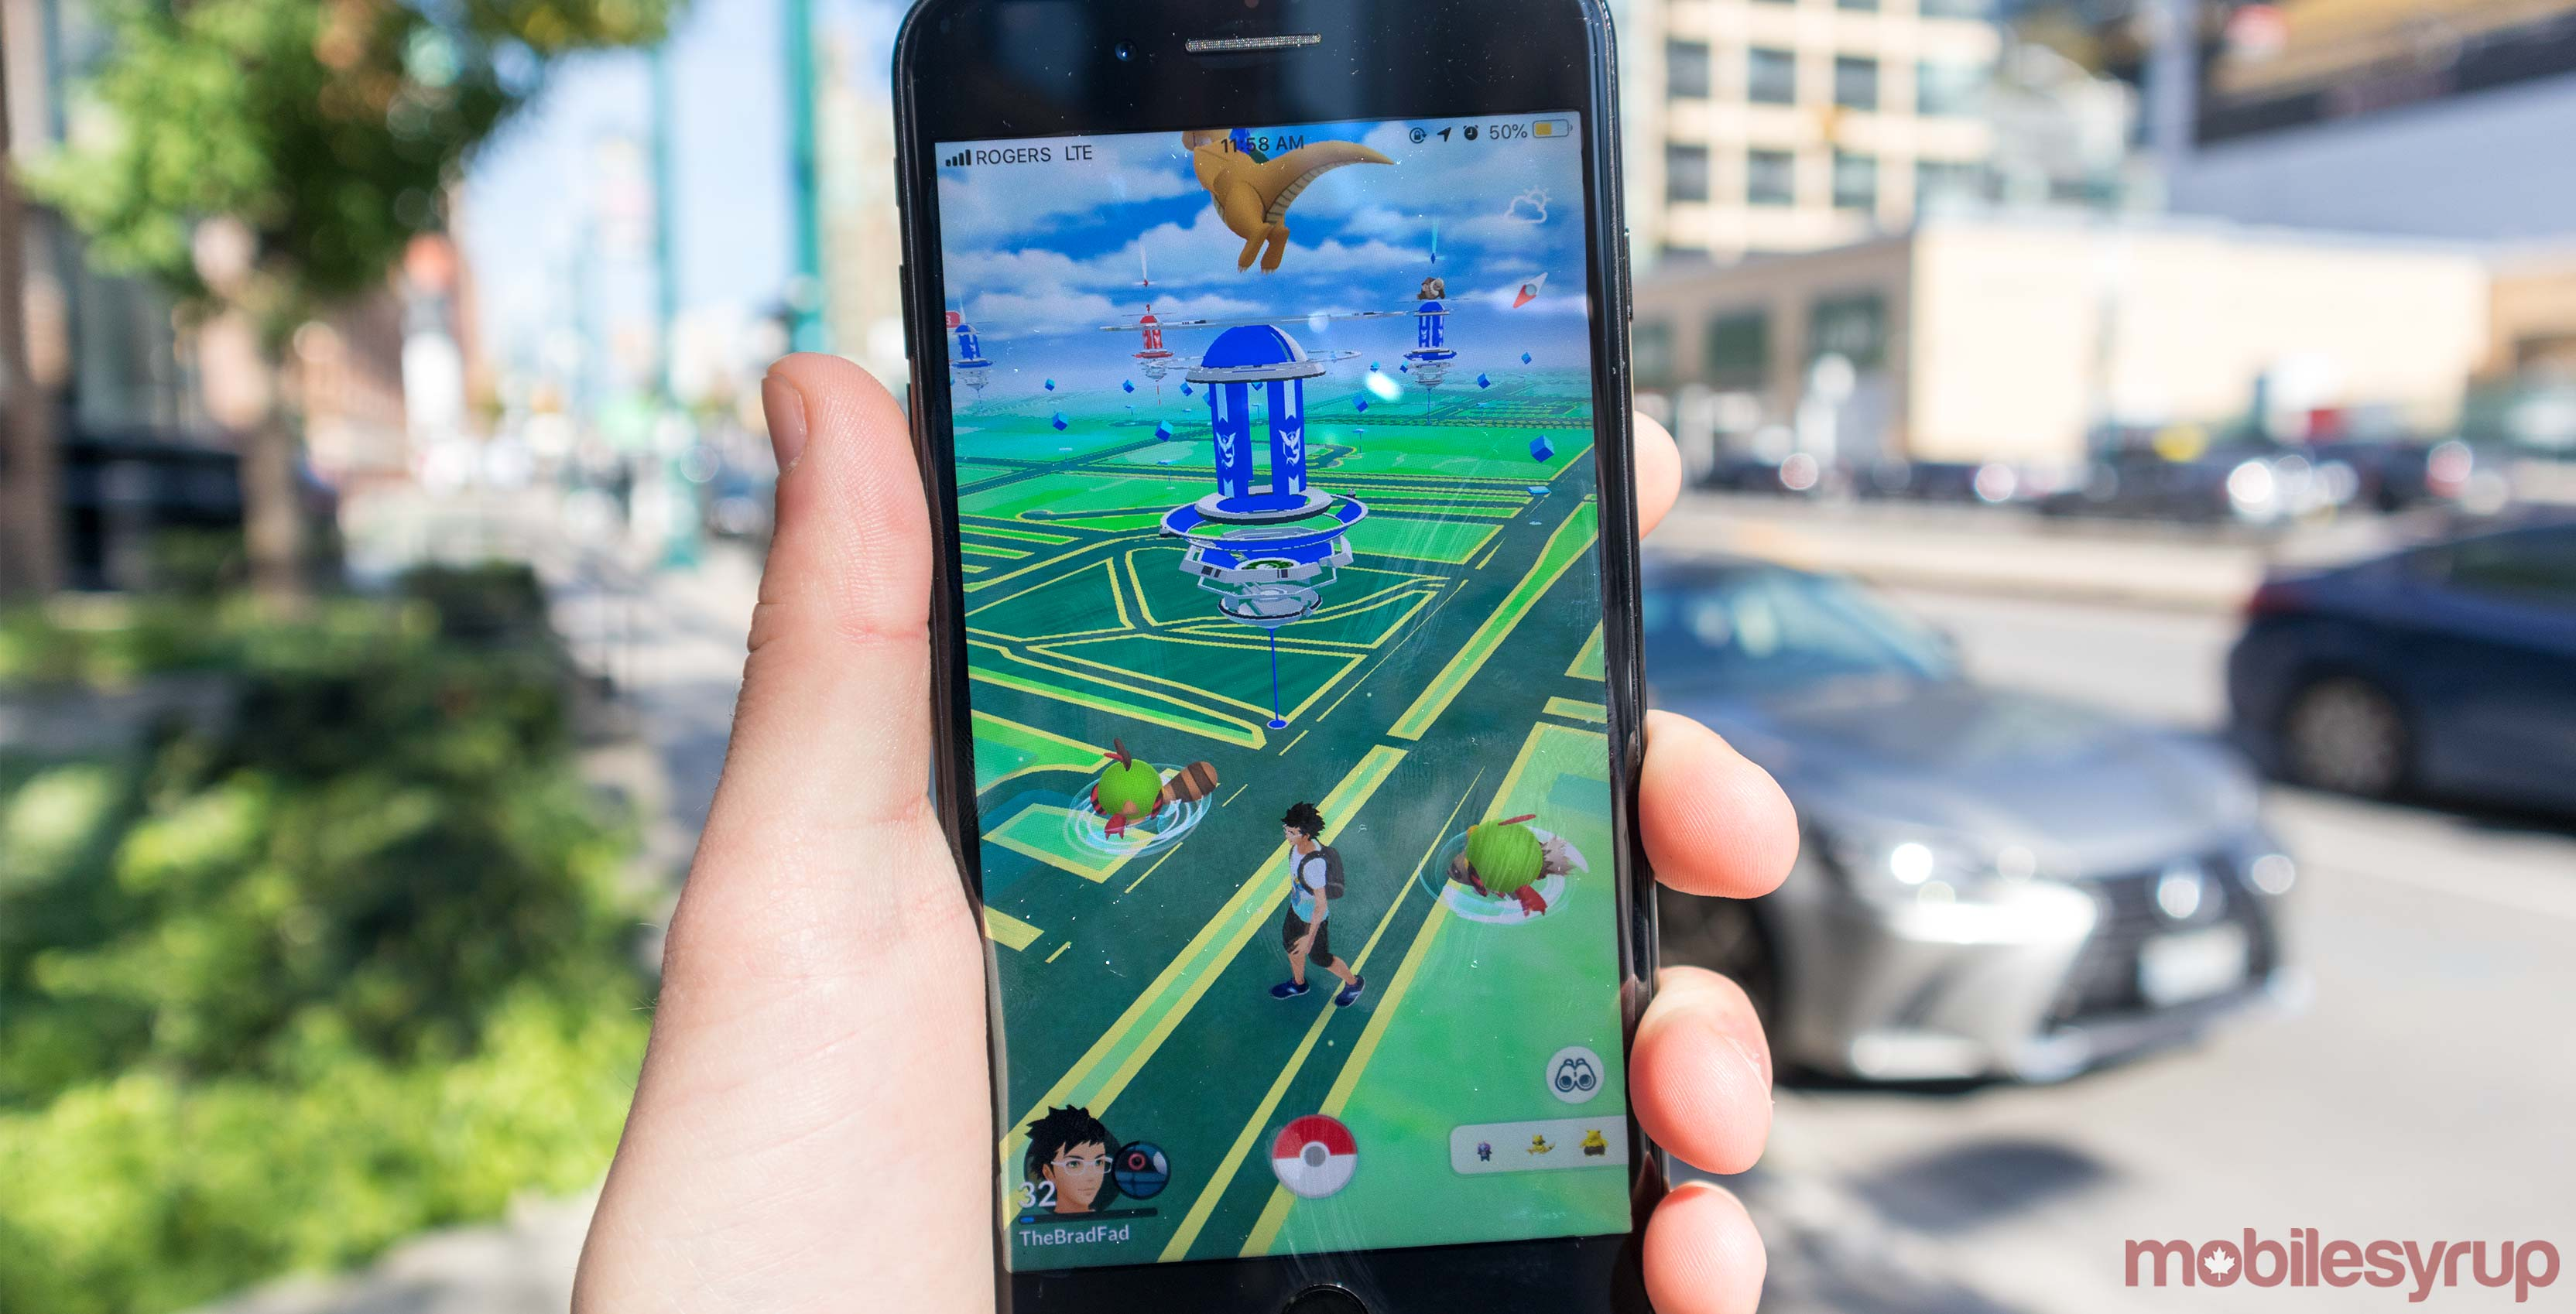 Pokemon GO can now track steps like a smartwatch or fitness band